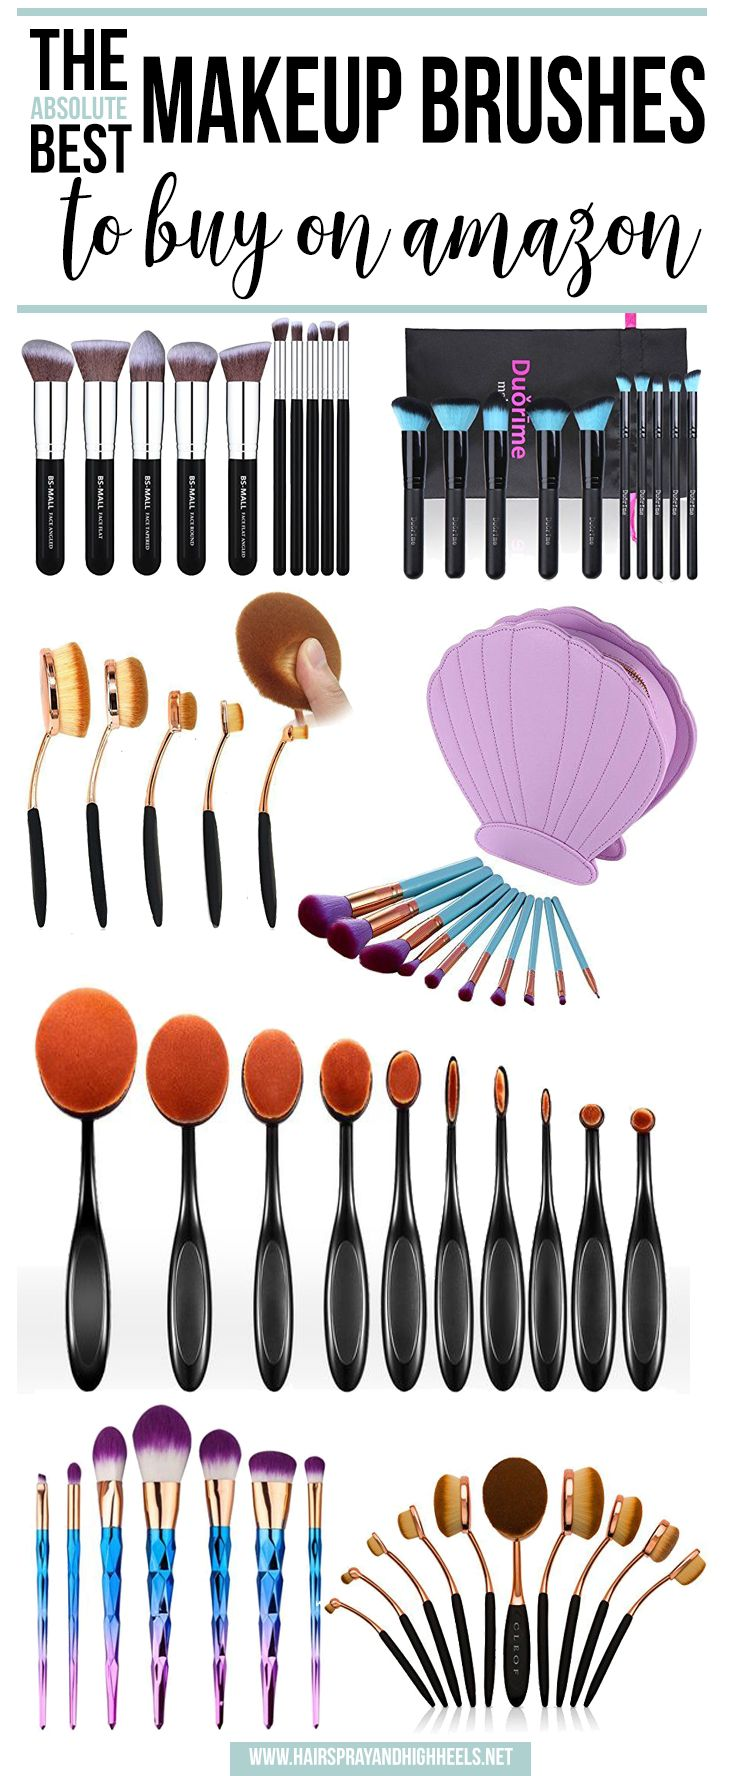 Stop everything you're doing right NOW! You have to check this post out. The ABSOLUTE BEST Makeup Brushes on Amazon!